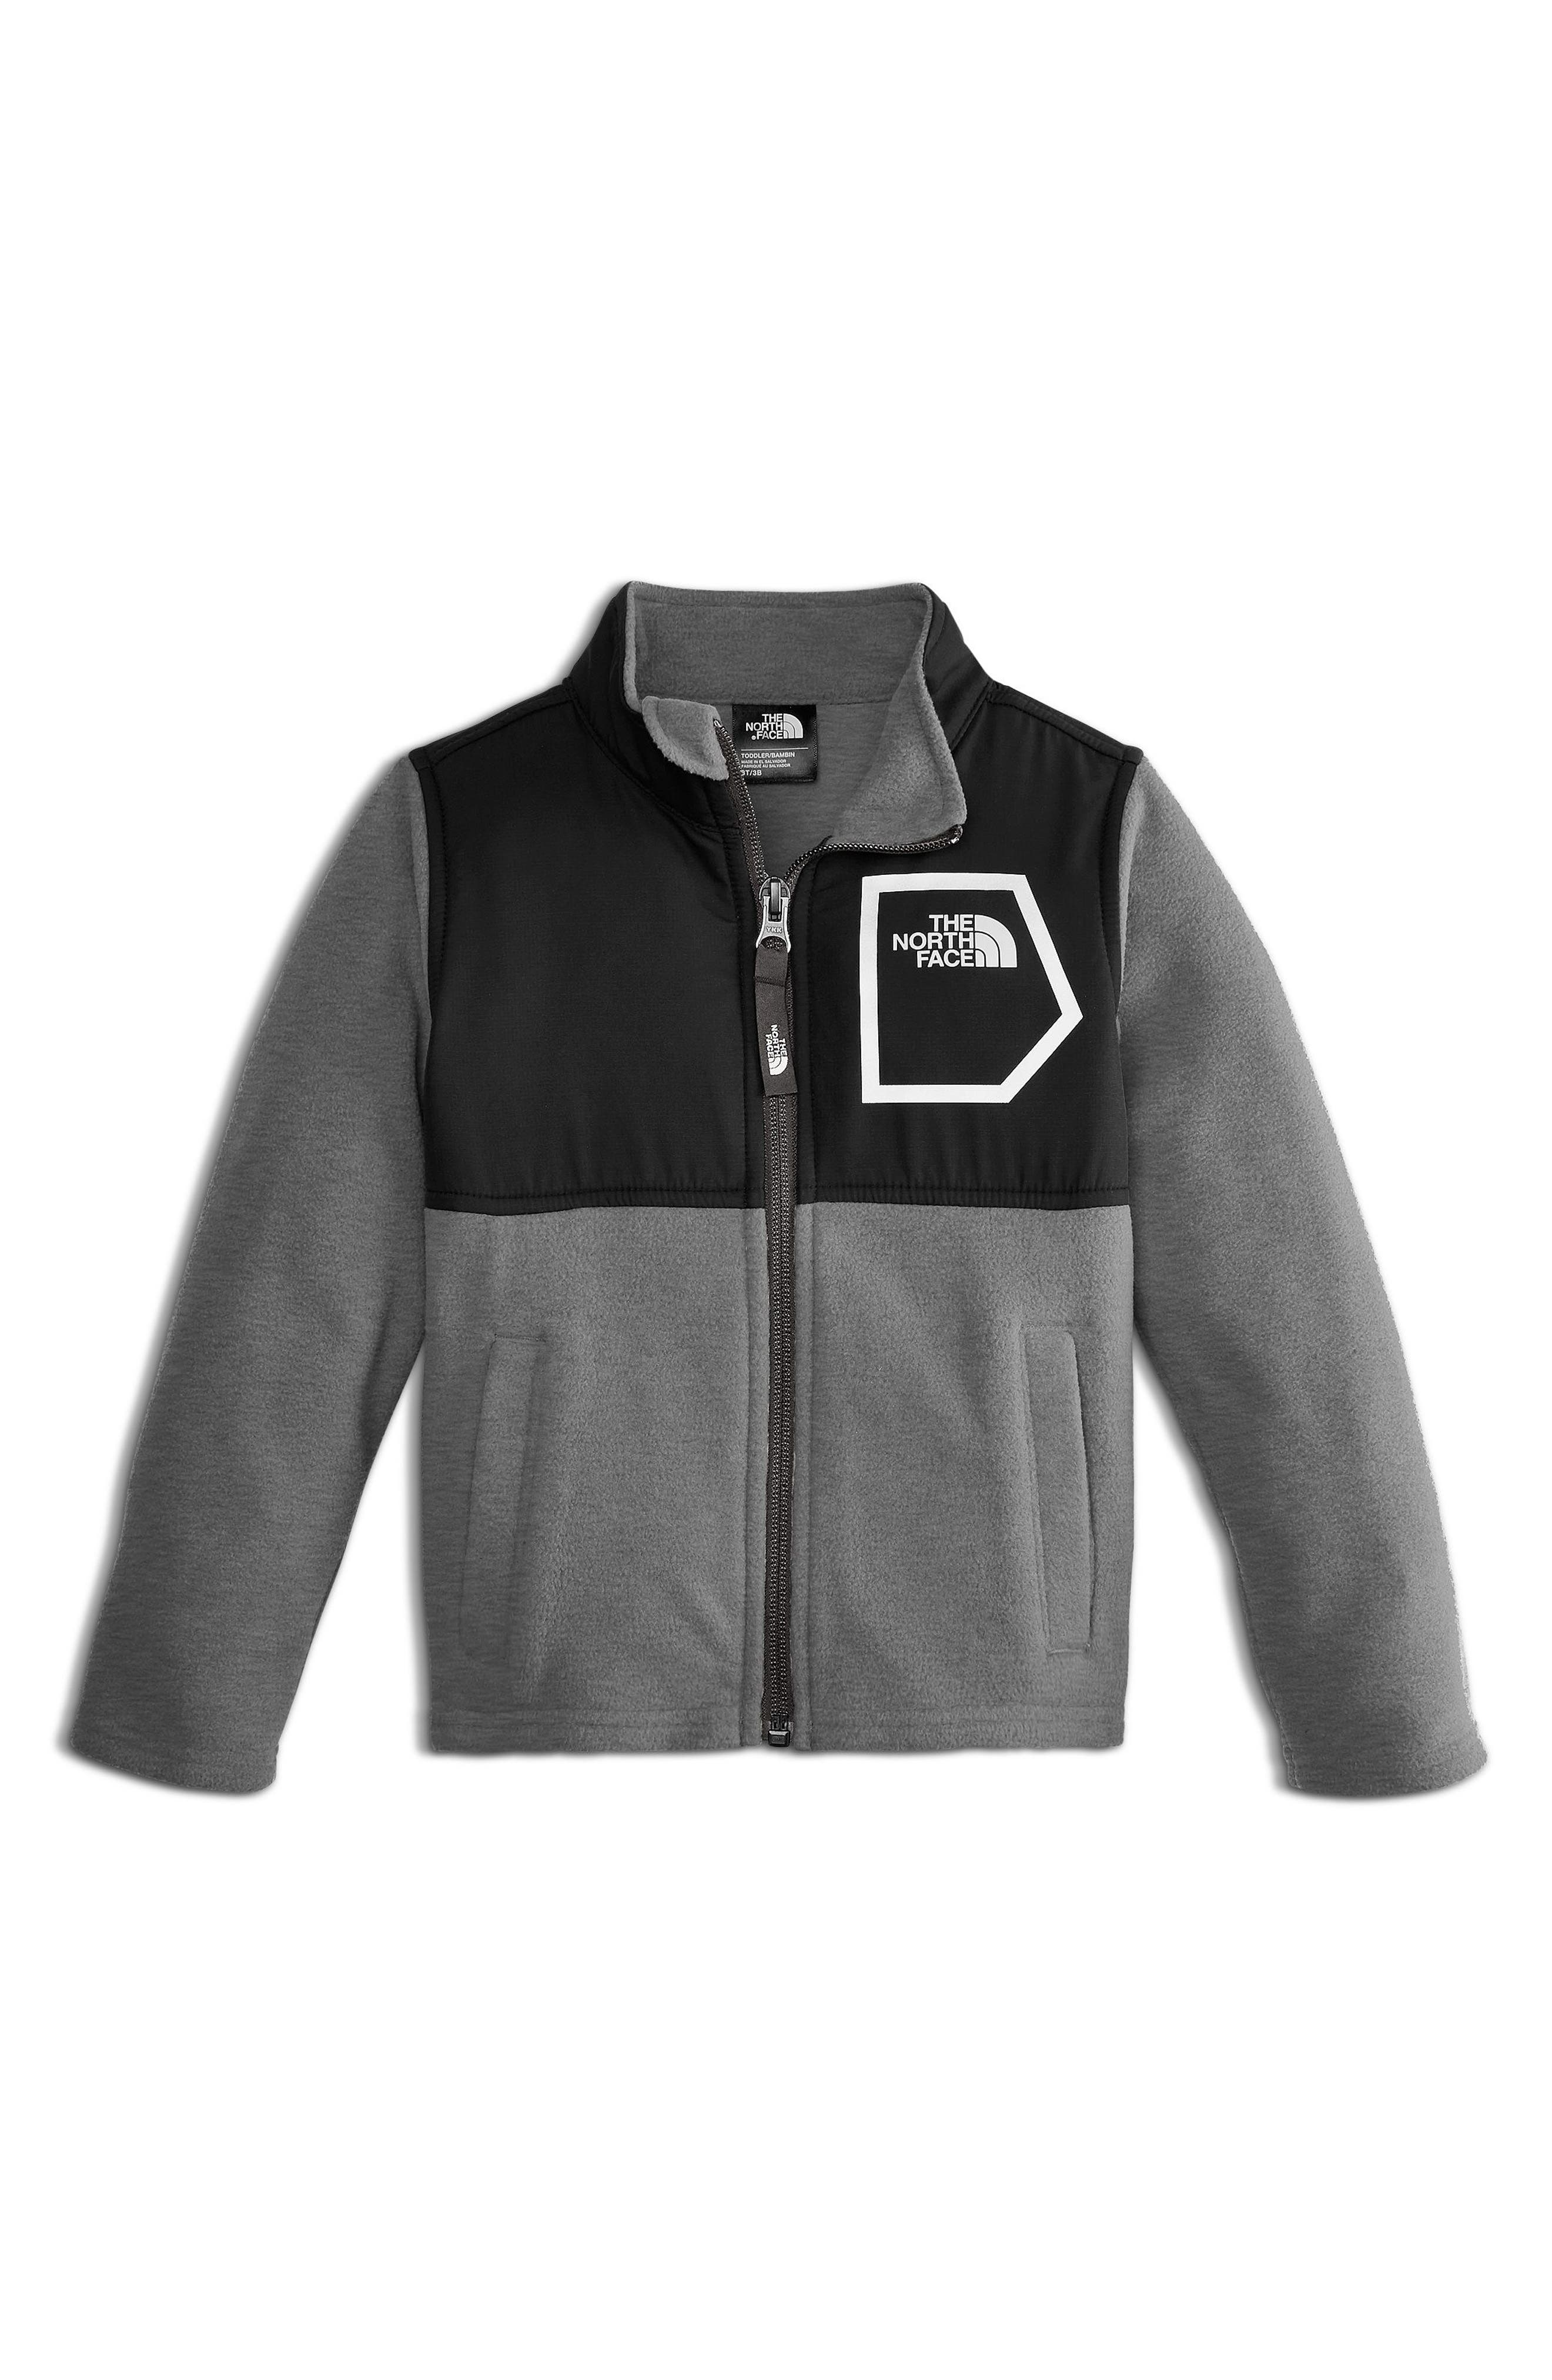 Glacier Track Jacket,                             Main thumbnail 1, color,                             030